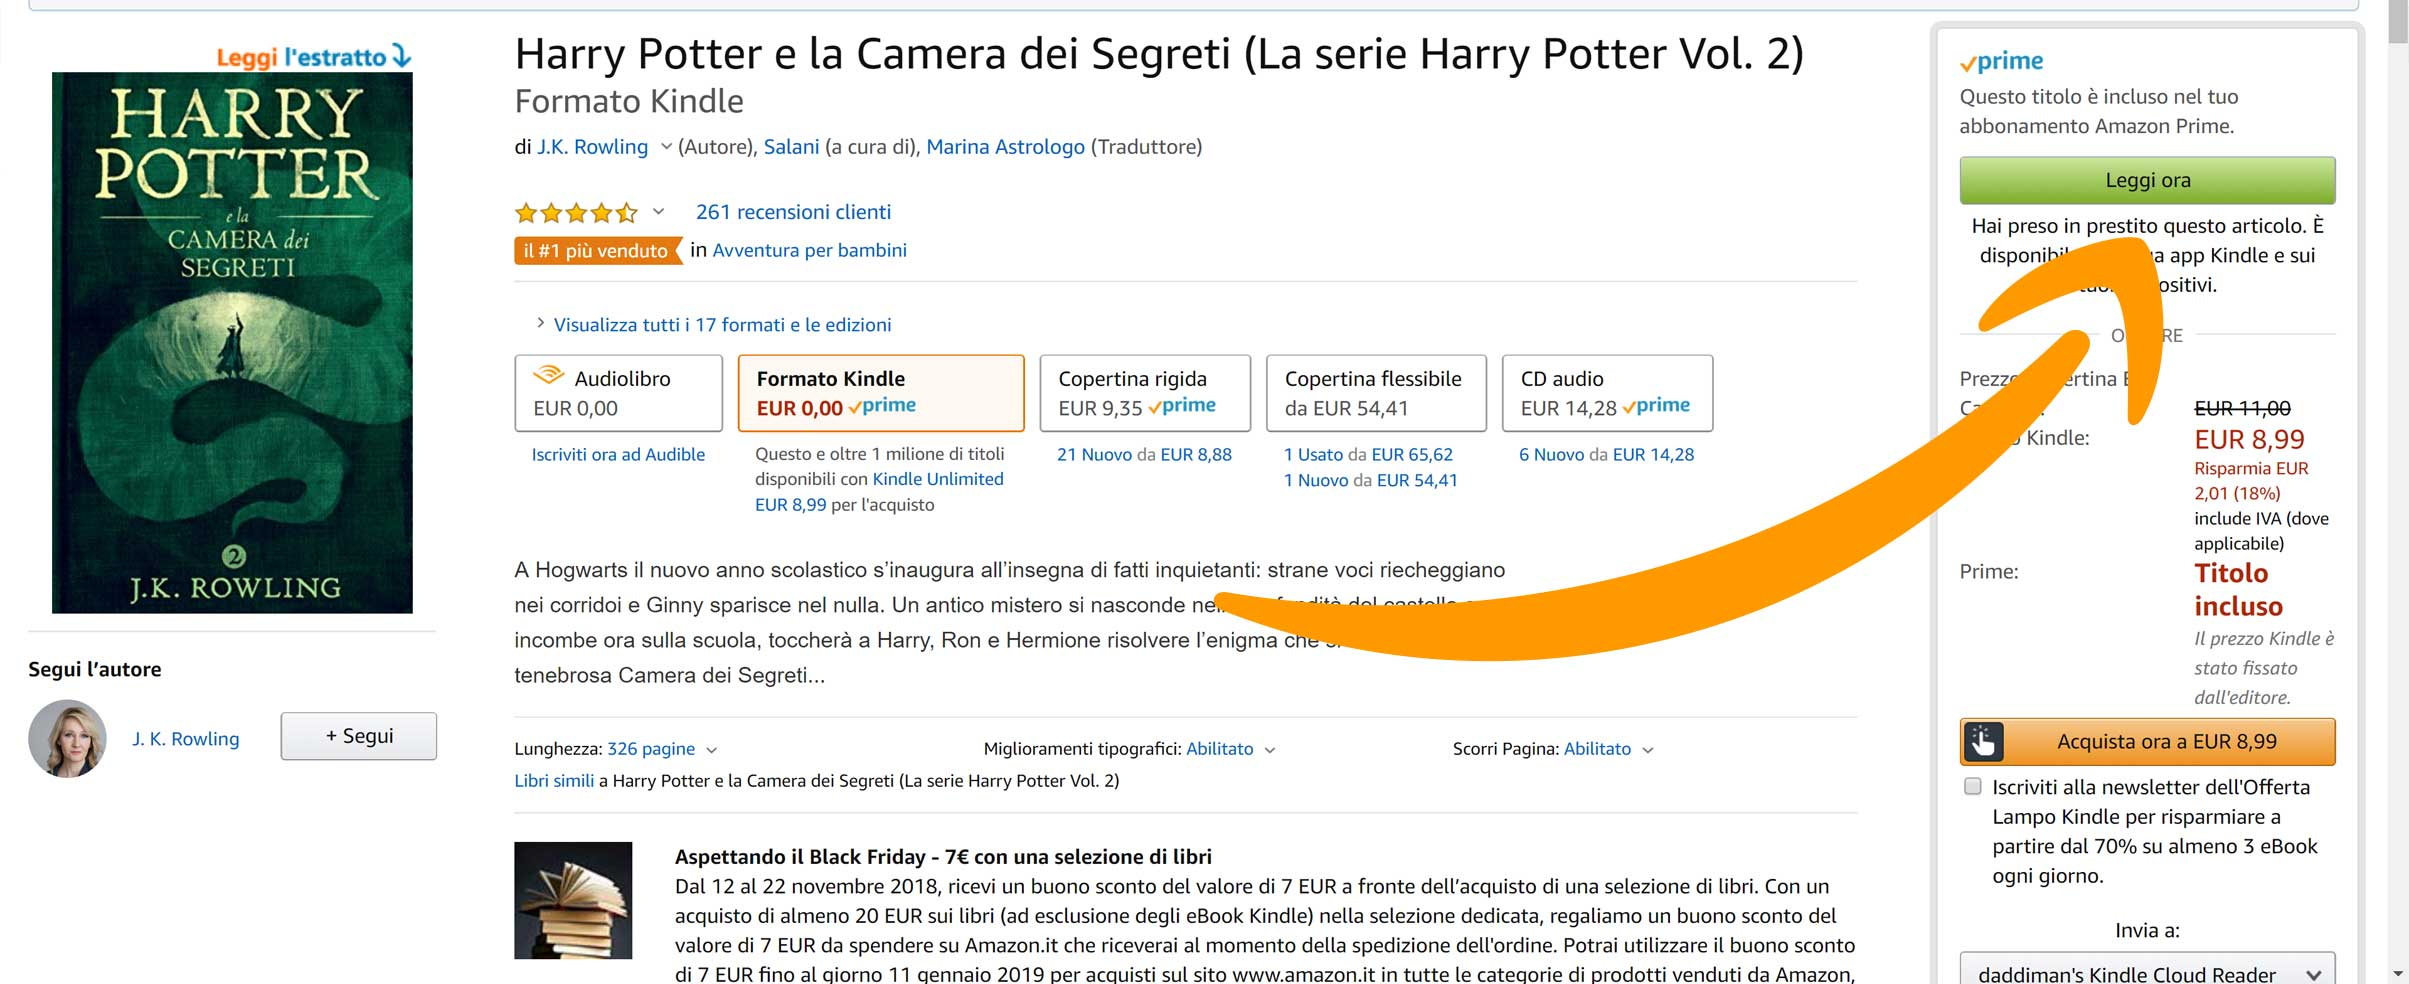 leggere-harry-potter-gratis-libro